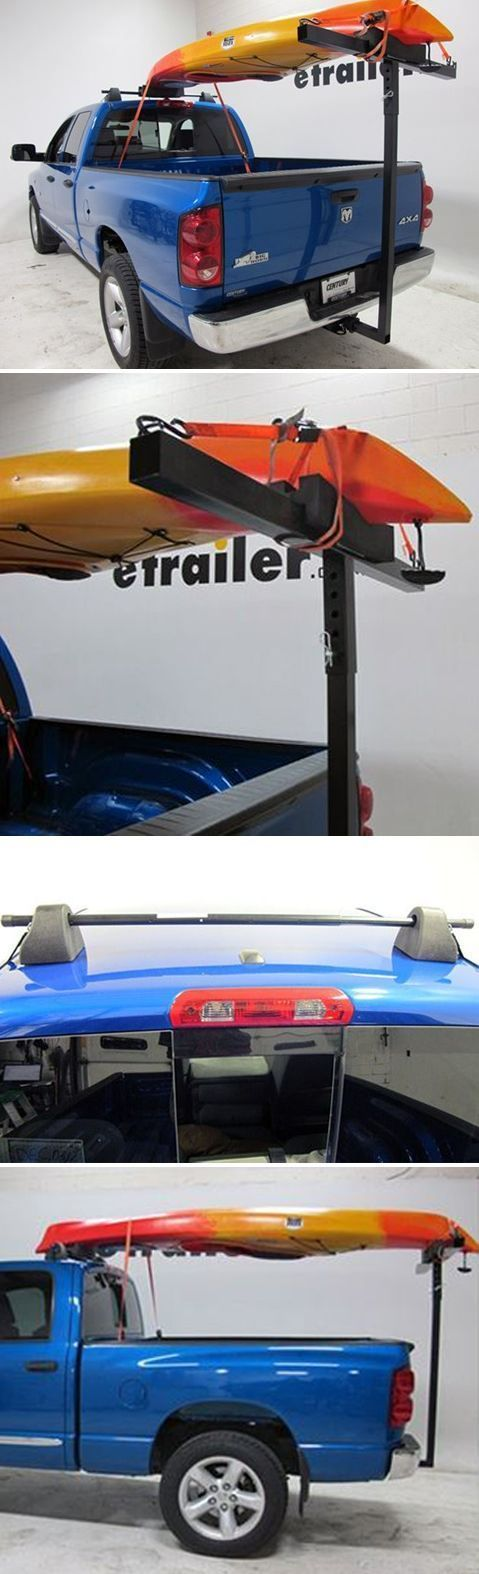 """Carry your canoe or kayak safely and securely on your pickup truck. This setup includes a rooftop crossbar, foam kayak block and hitch-mounted extension piece to create a full system. All you need is a 2"""" trailer hitch receiver and your boat."""